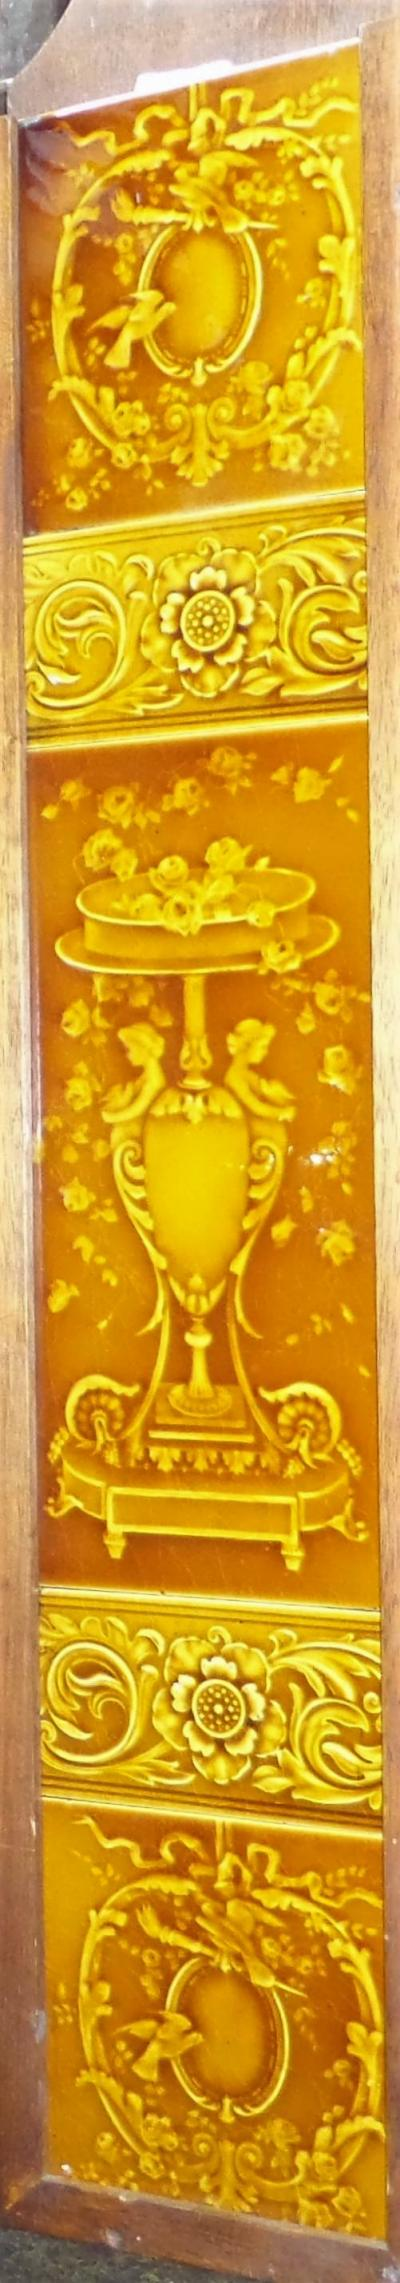 Antique Victorian Golden Majolica Tile Set